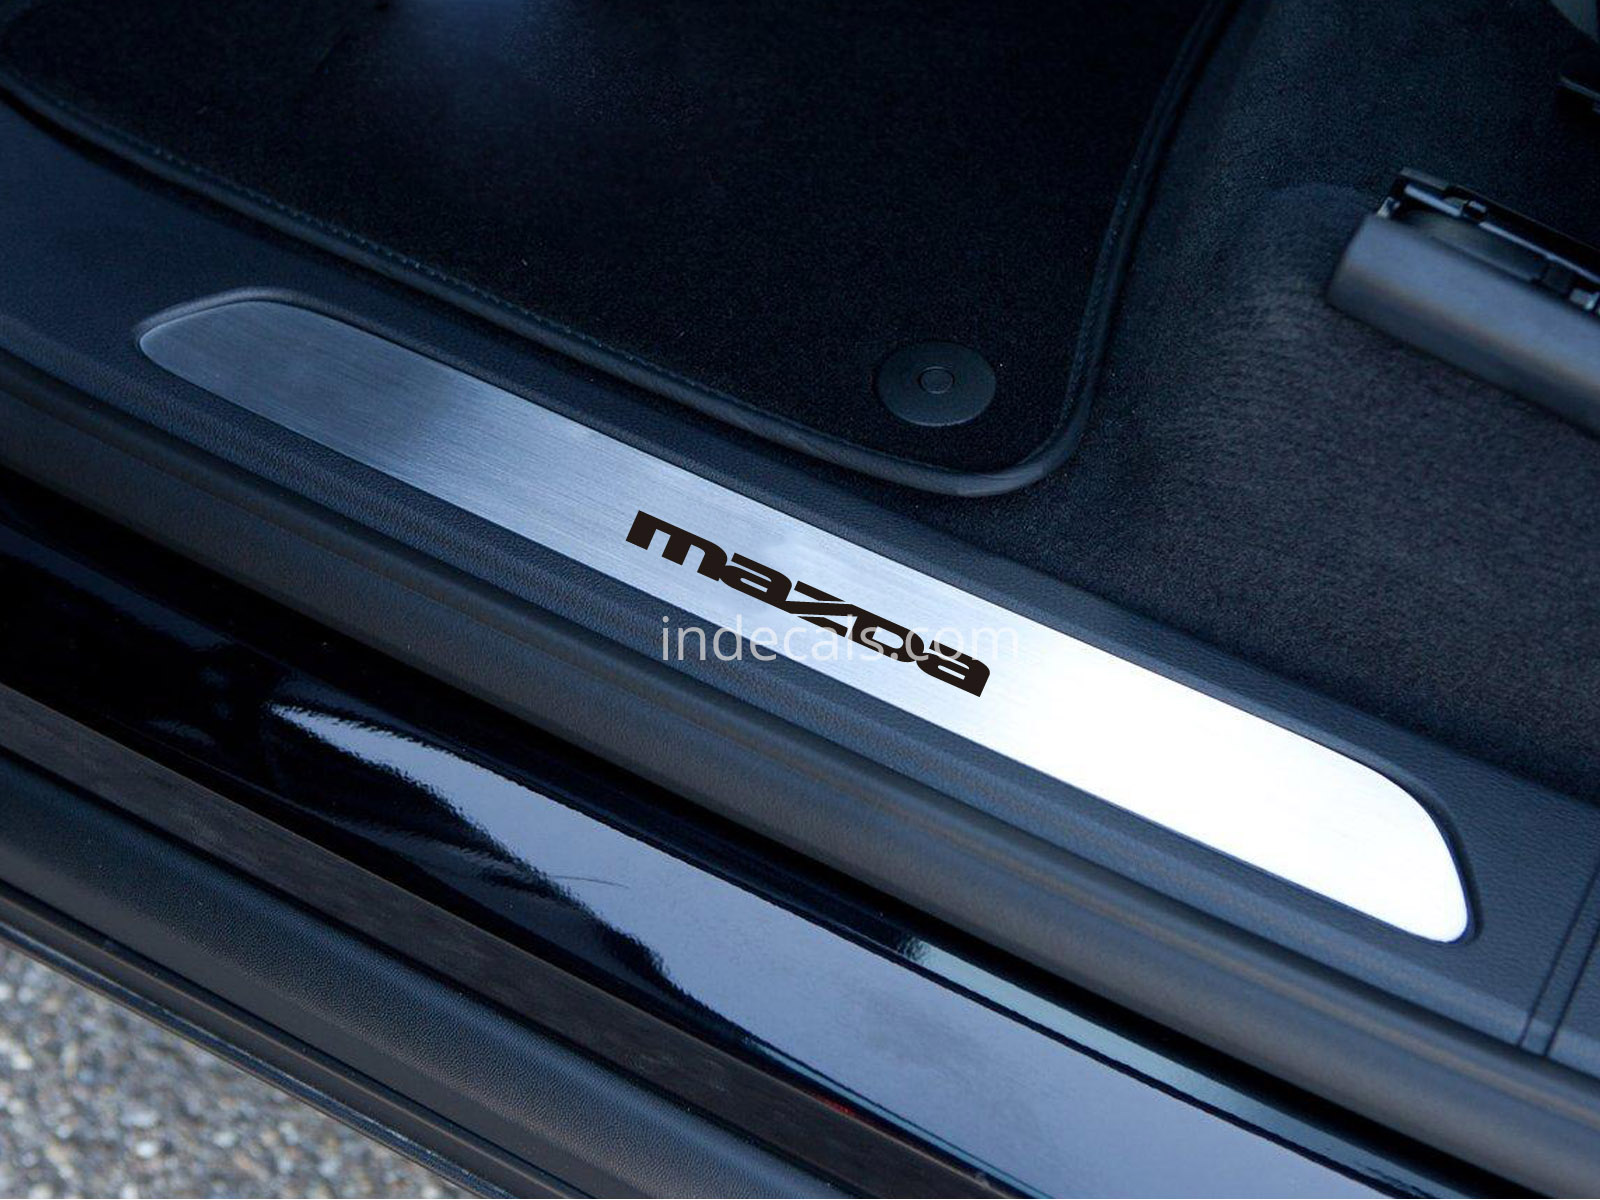 6 x Mazda Stickers for Door Sills - Black : miata door sills - pezcame.com